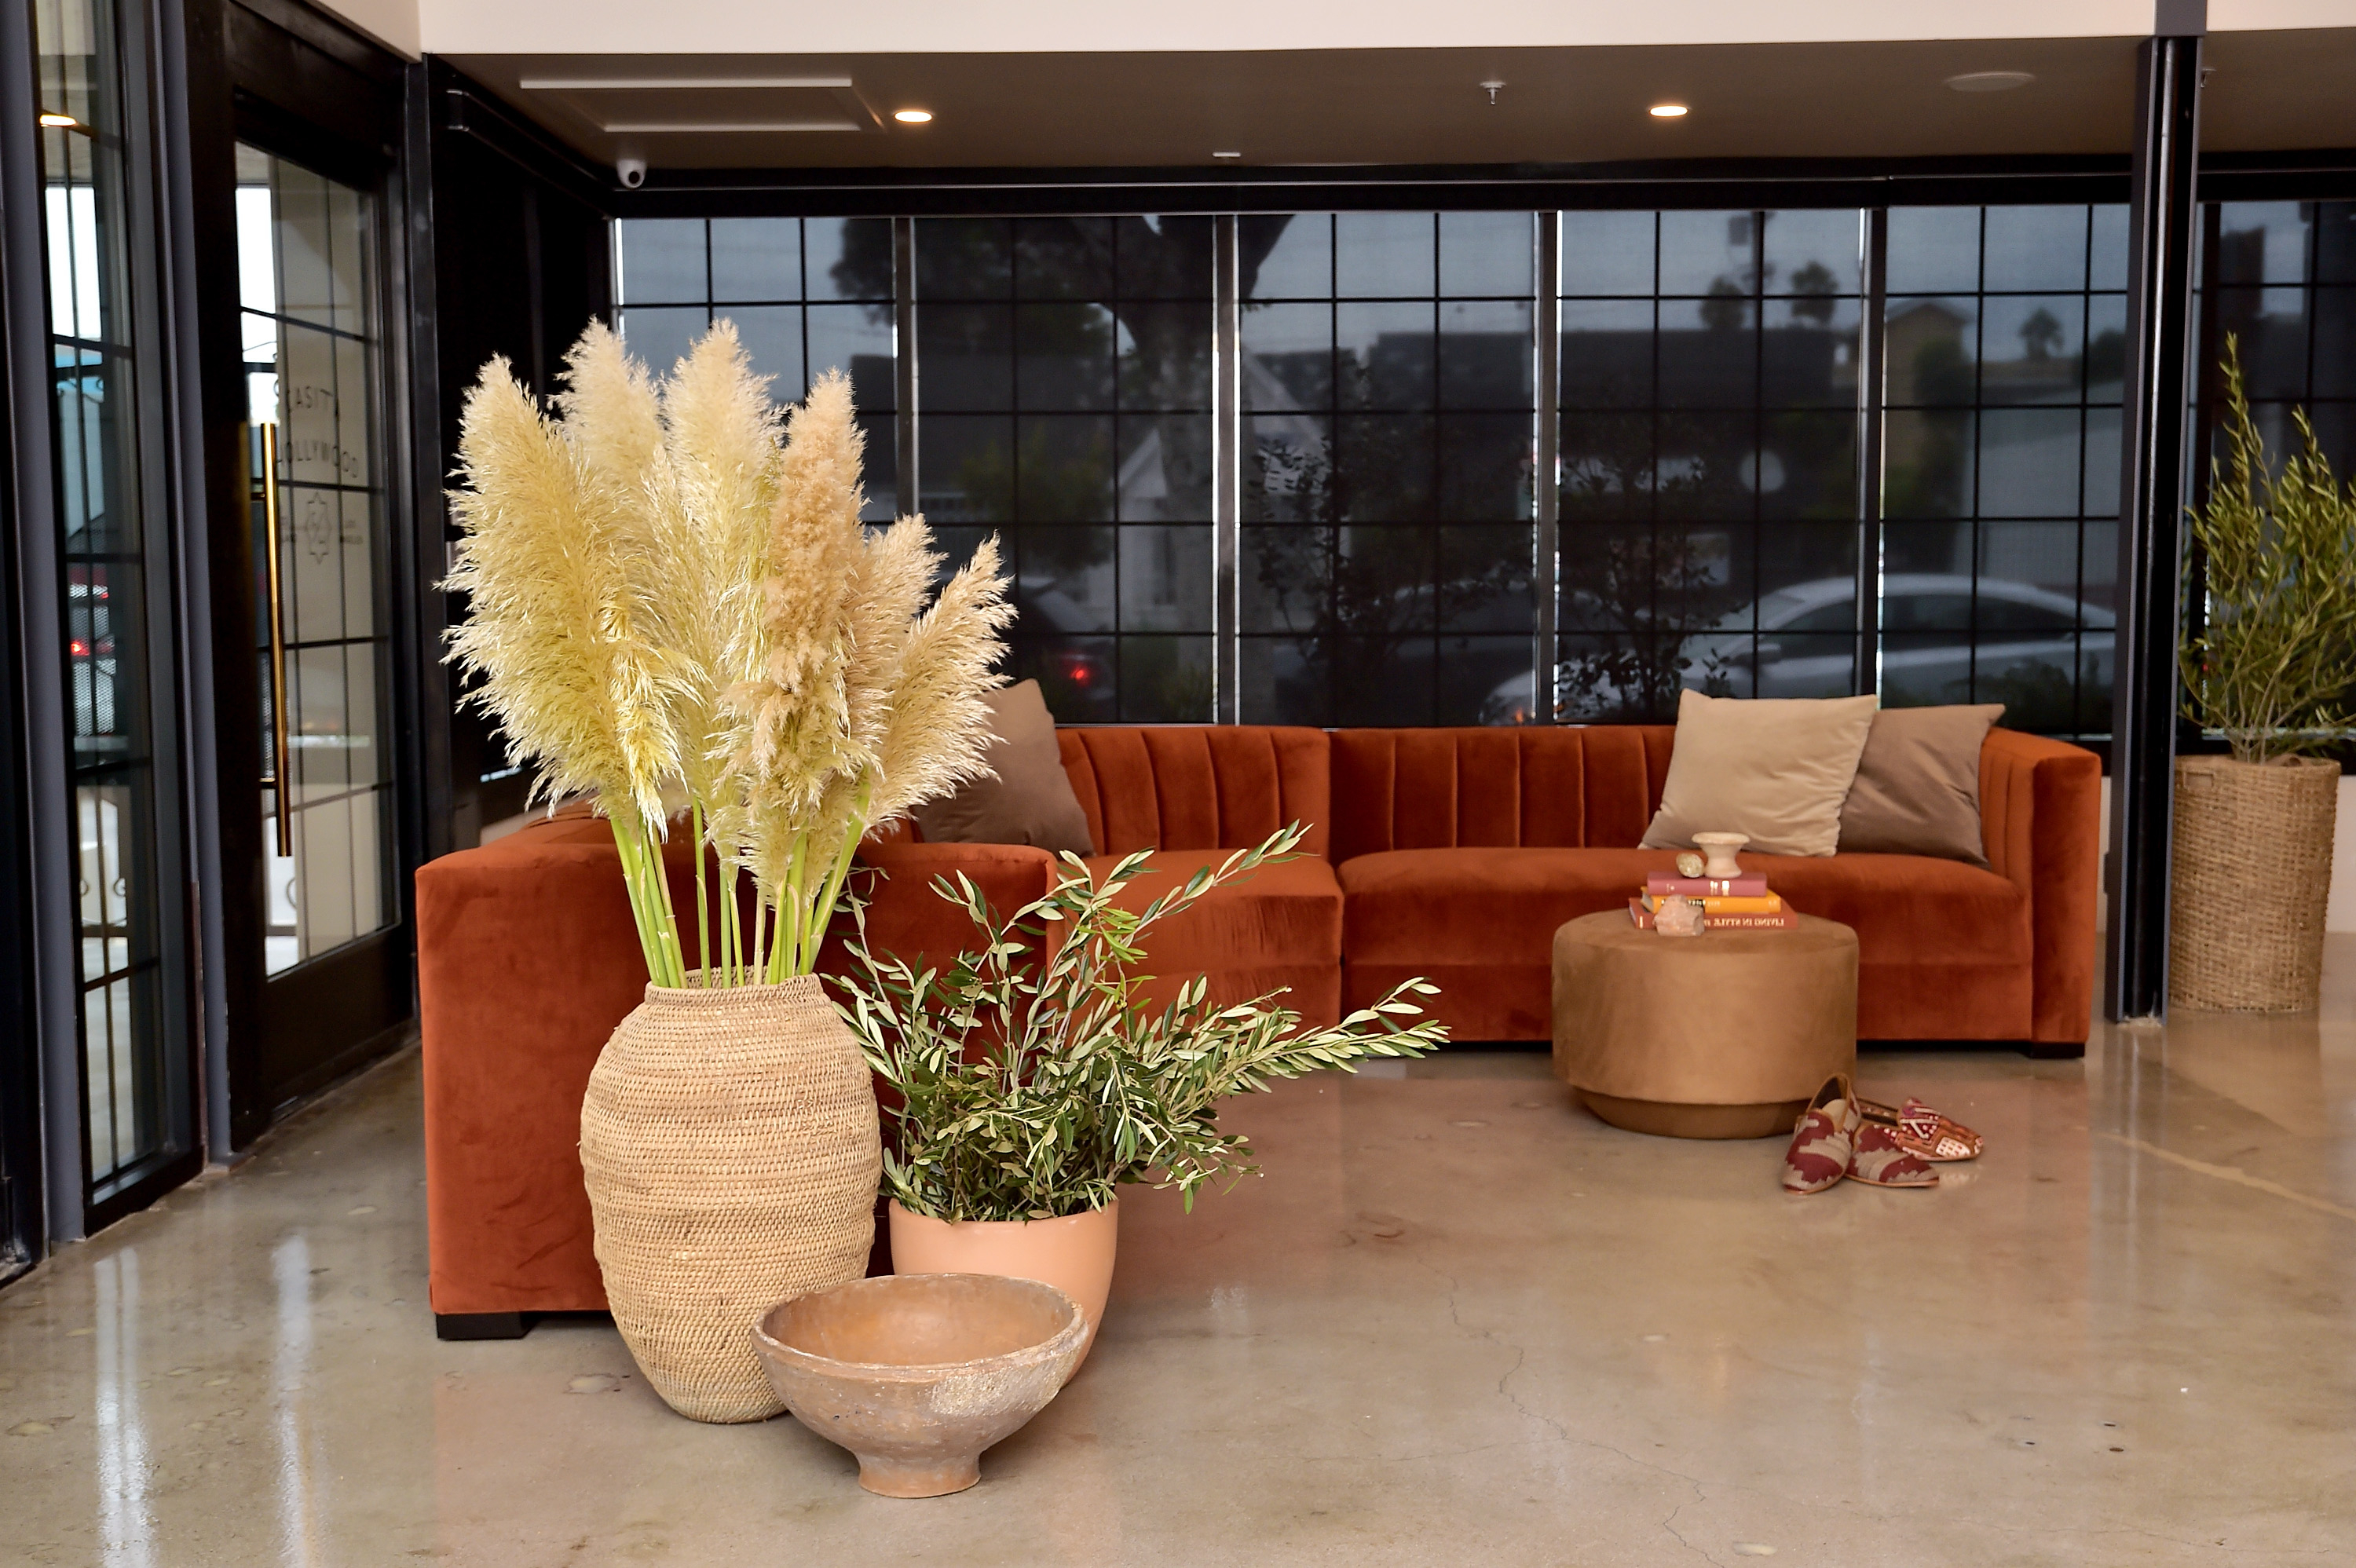 Soane 3 Piece Sectionals By Nate Berkus And Jeremiah Brent Within Trendy Rue On The Town: Celebrating Nate Berkus And Jeremiah Brent For (View 3 of 20)